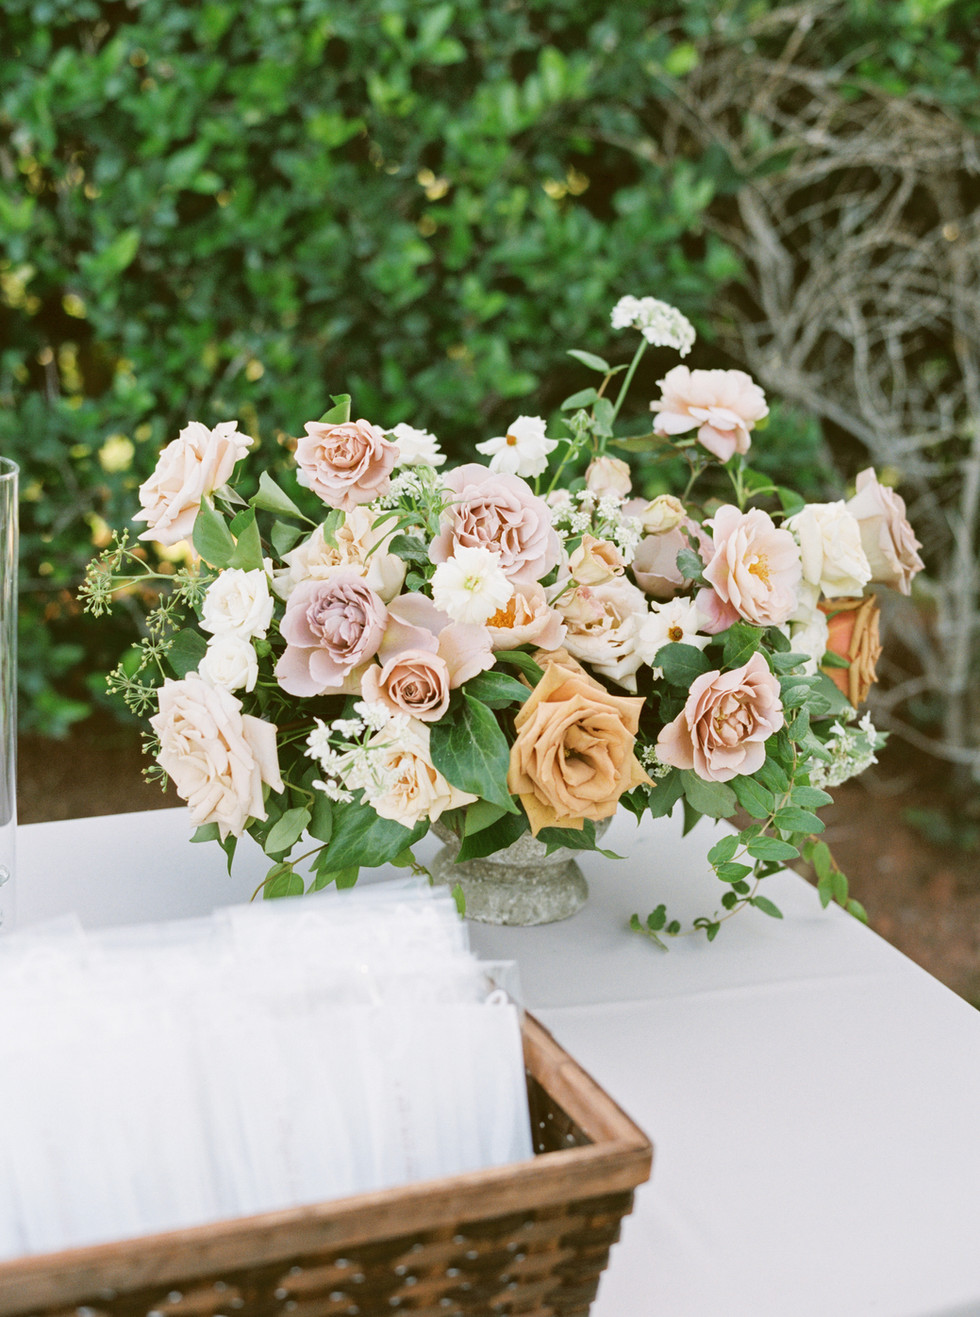 Dusty rose and toffee floral arrangement for Welcome Table. Photo: Lianna Marie